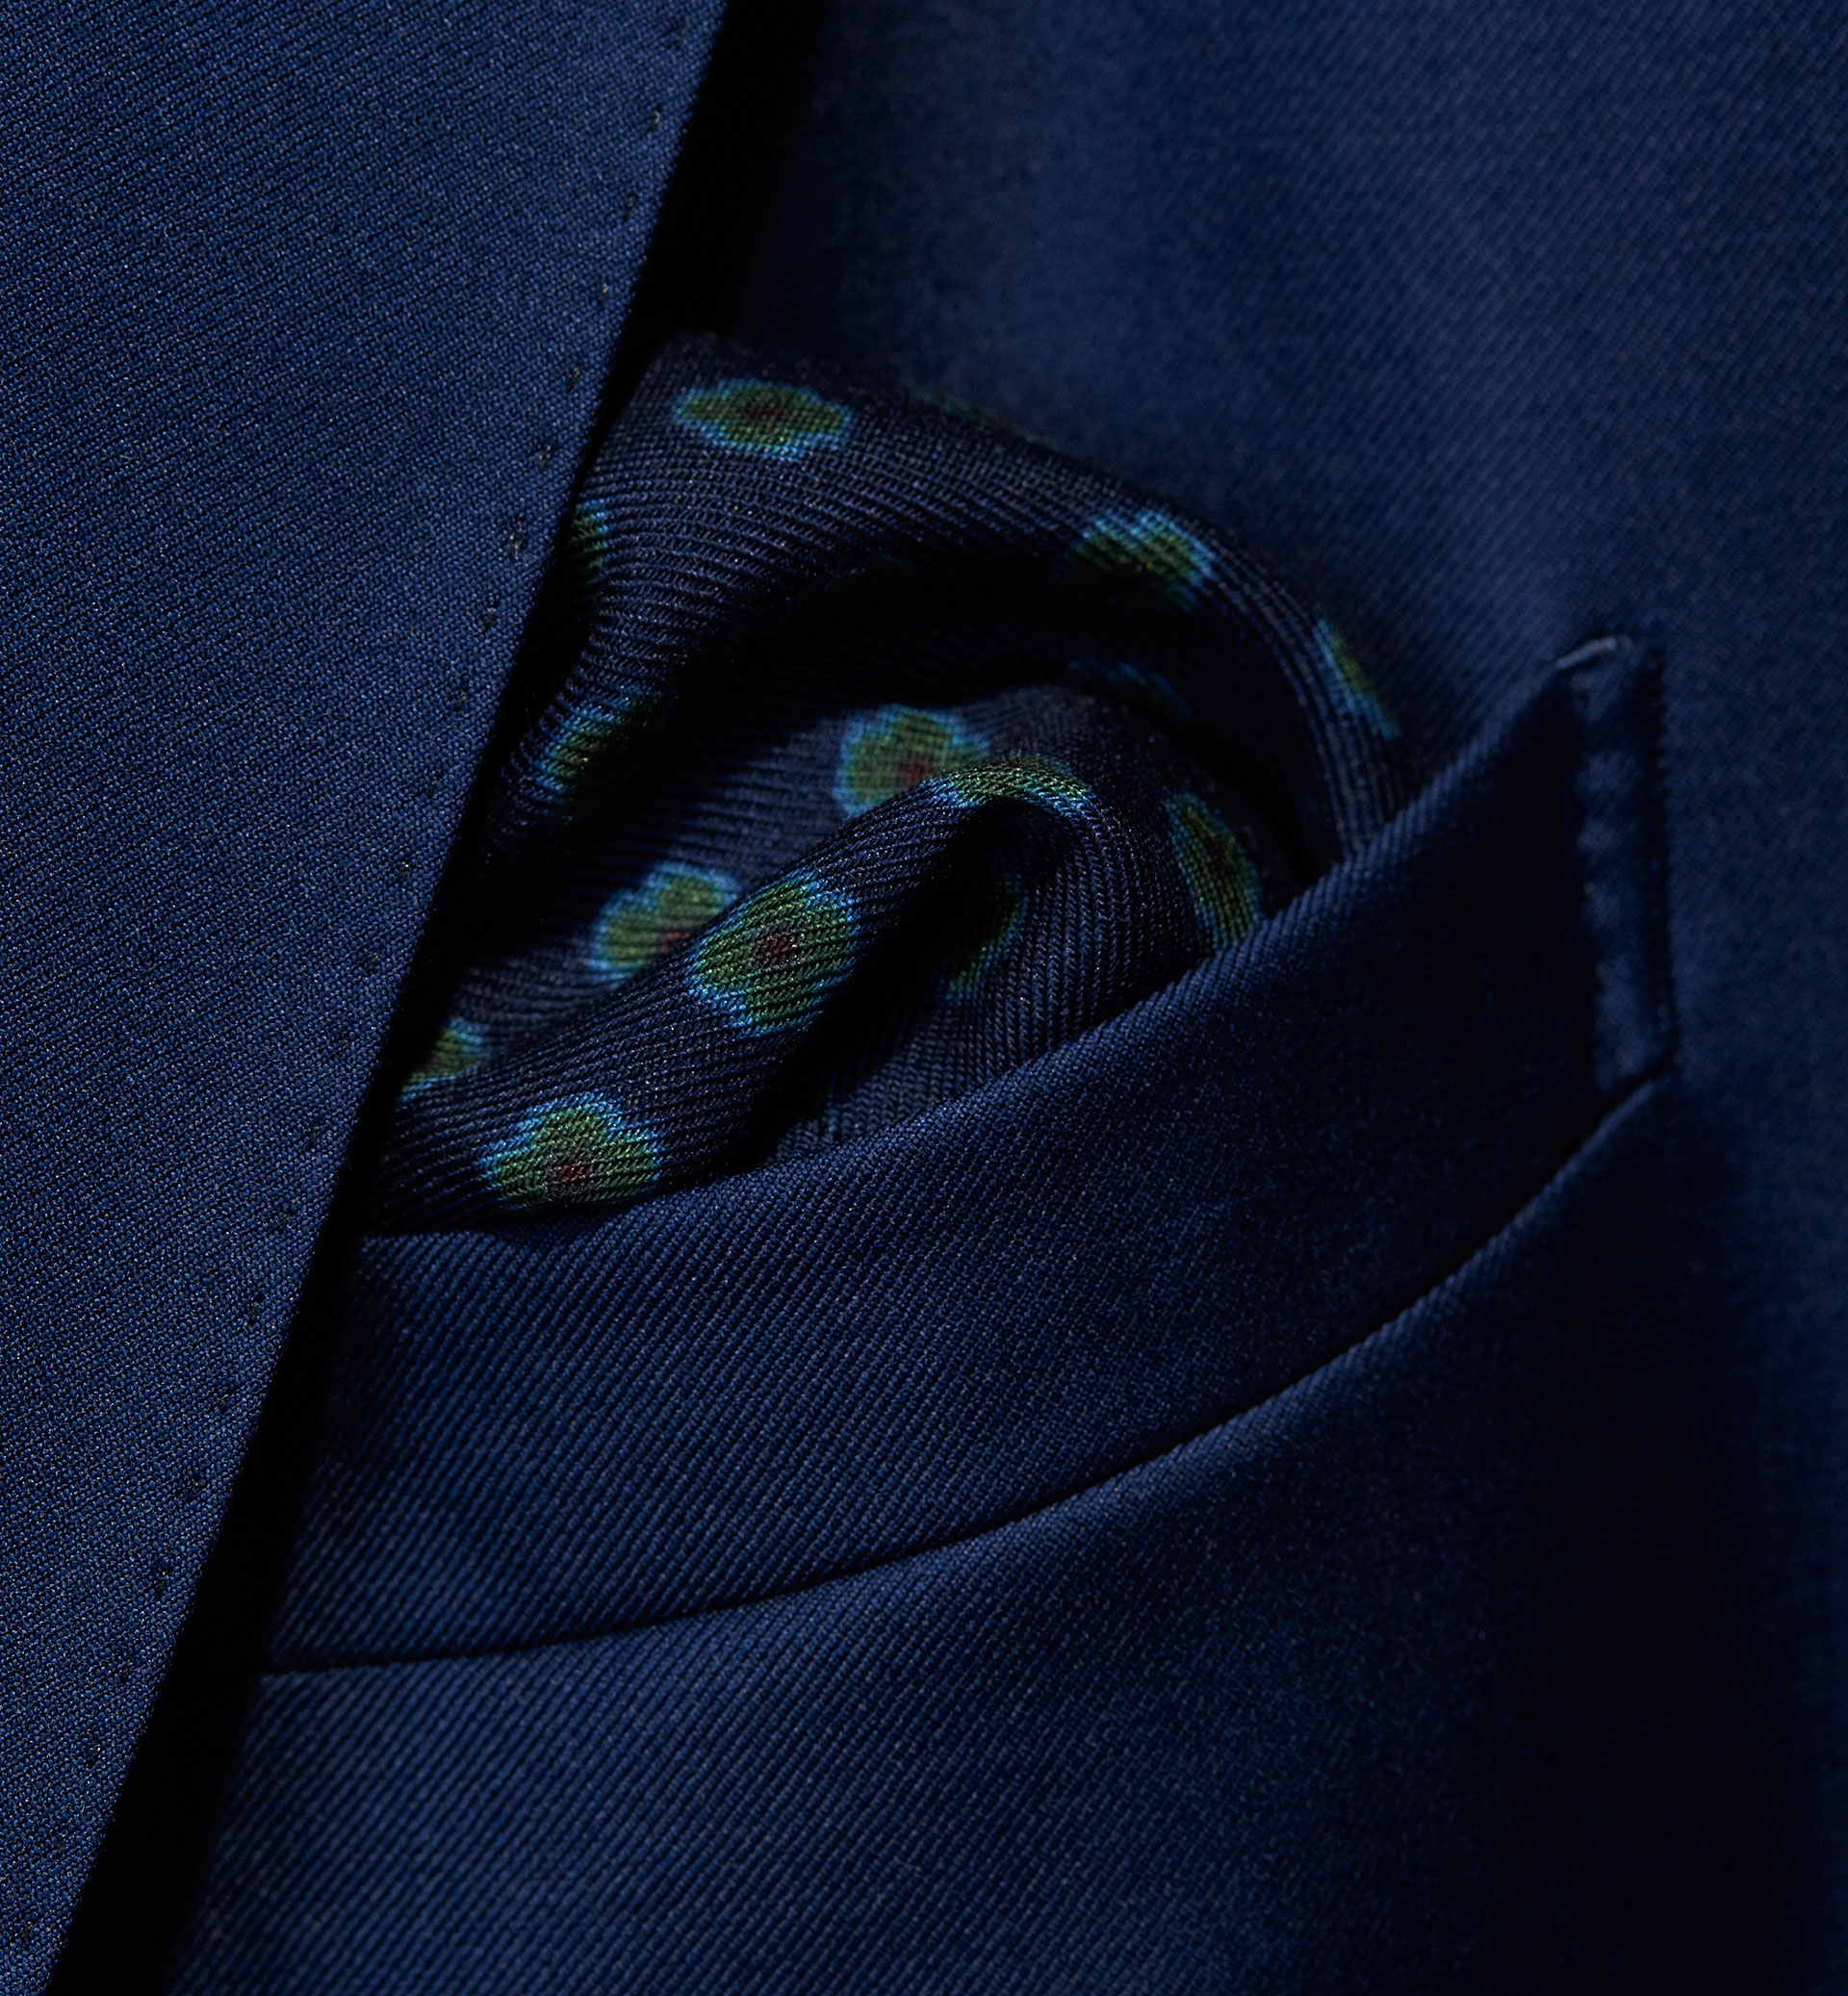 PERSONAL TAILORING GREEN FLORAL PRINT POCKET SQUARE